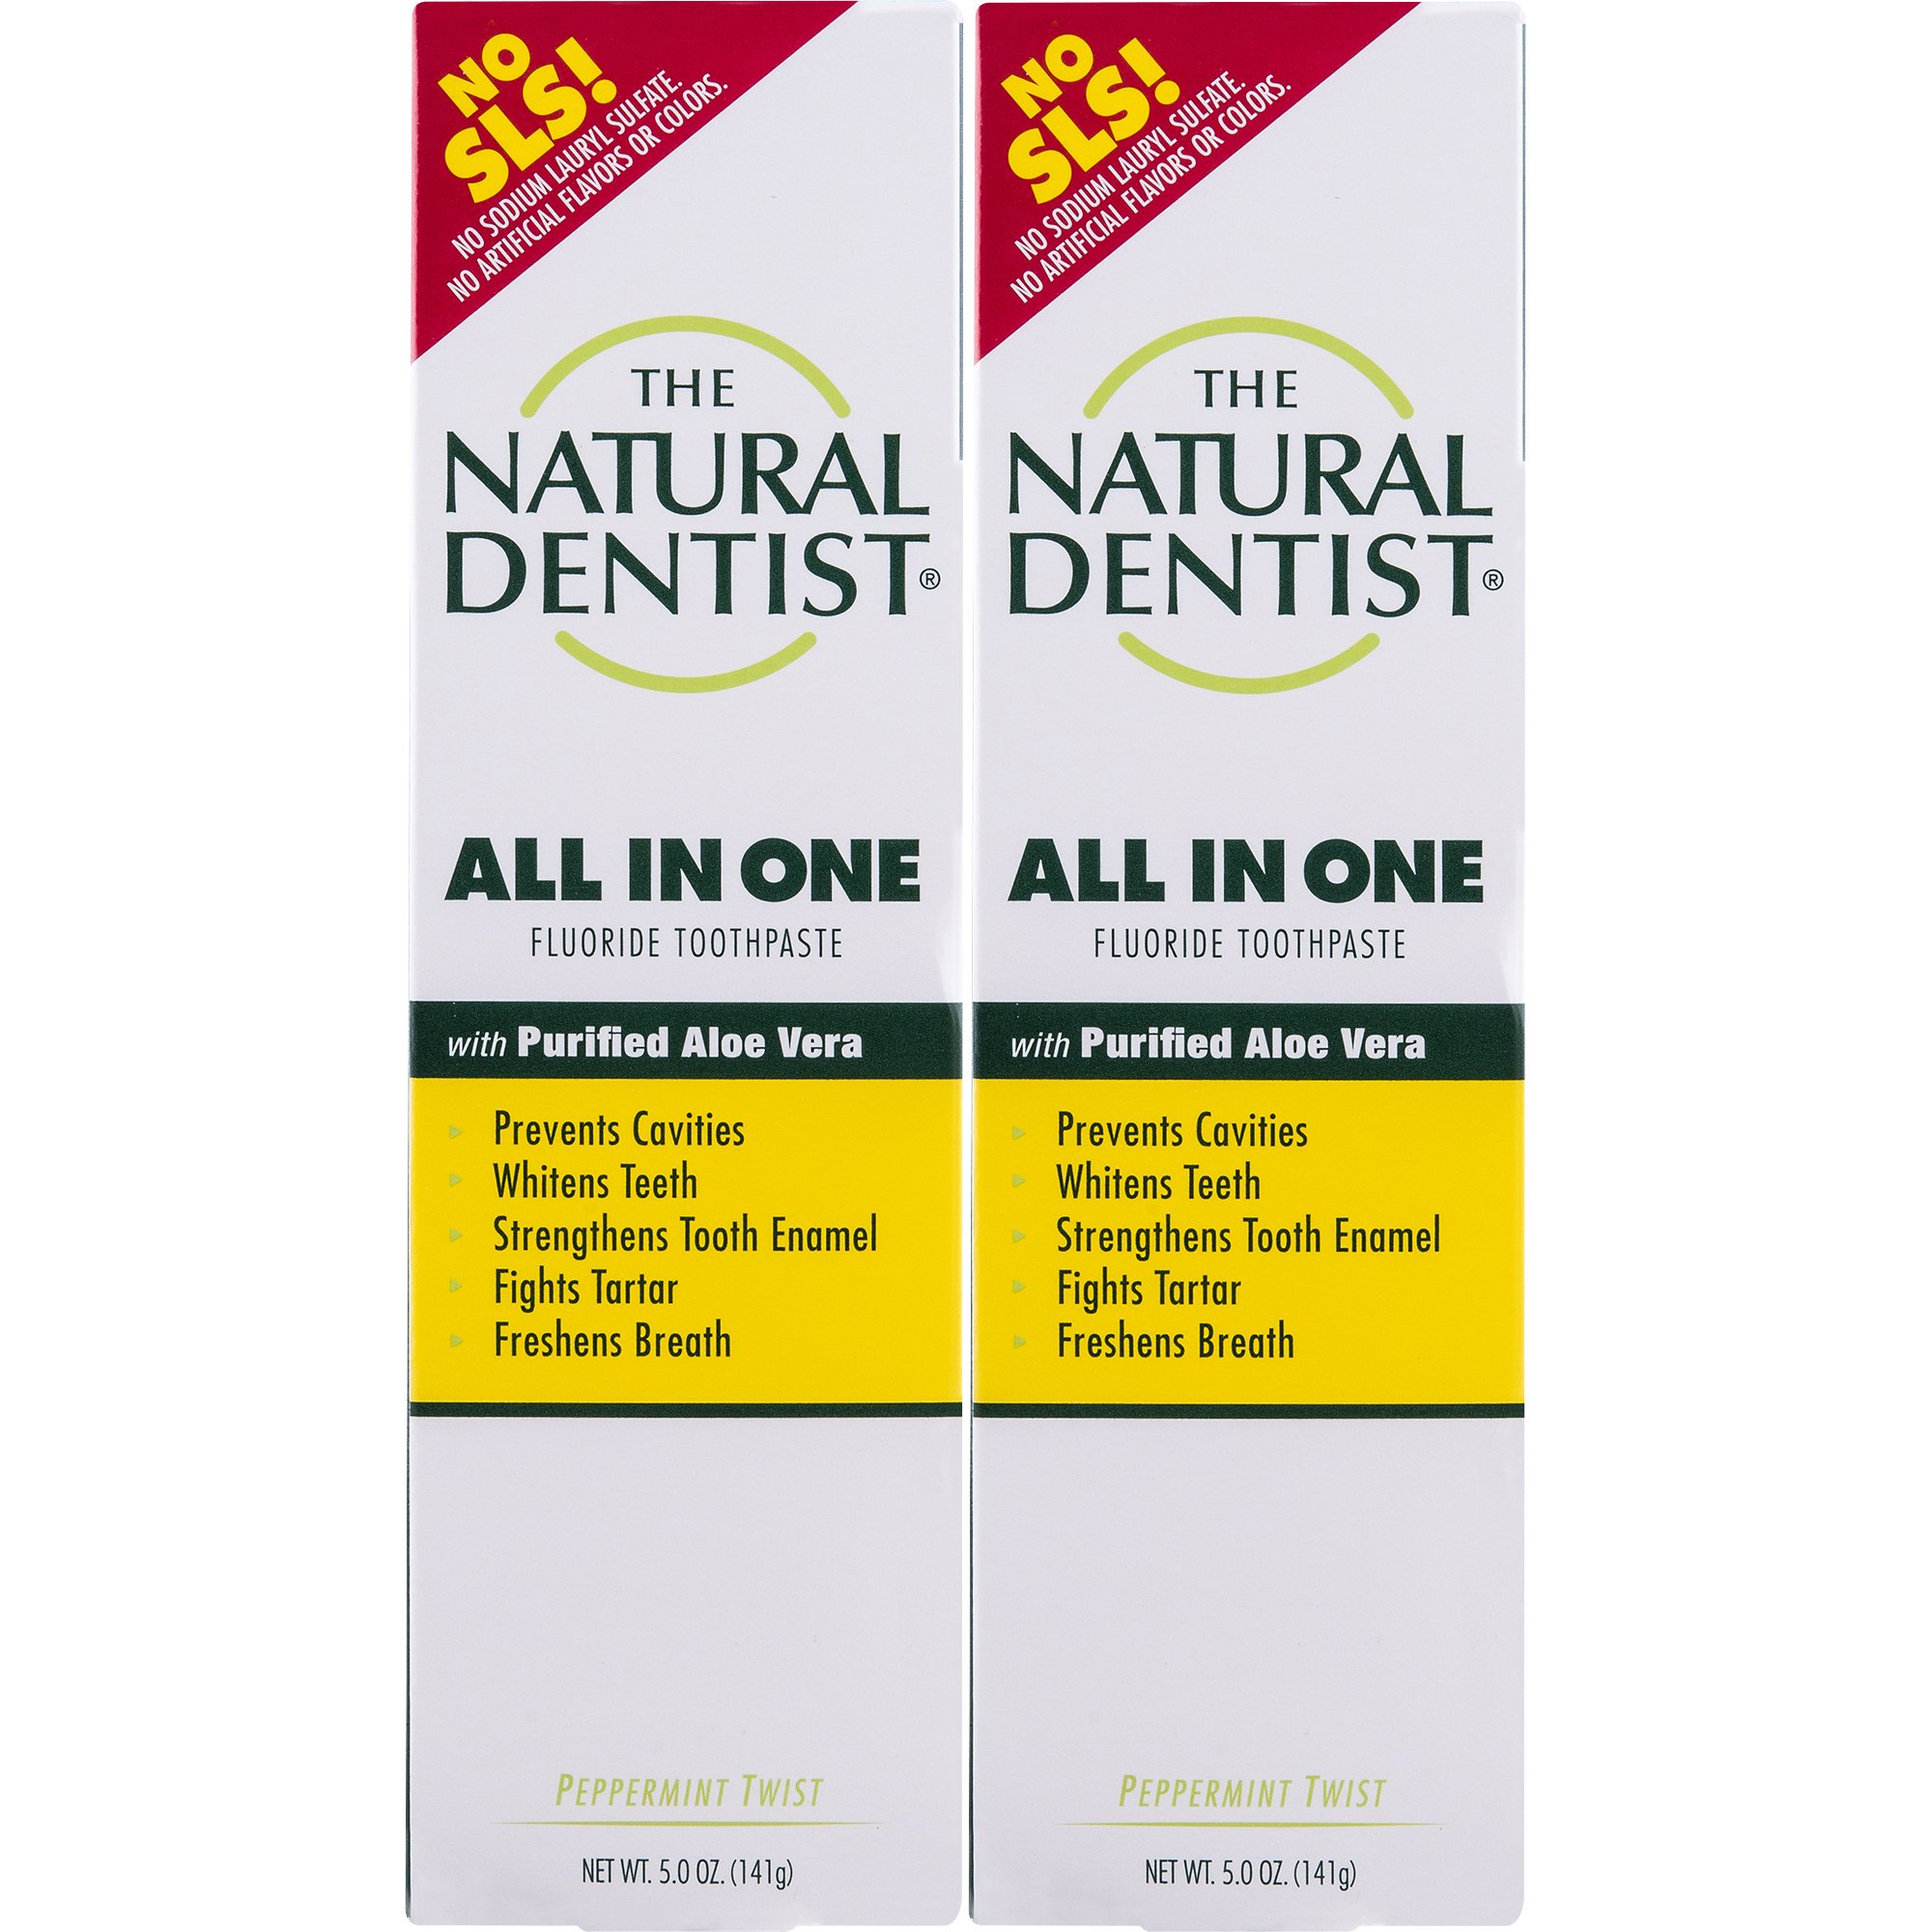 The Natural Dentist All In One Toothpaste, Peppermint Twist, 5 Ounce Tube (Pack of 2), Toothpaste for Daily Use, Reduces Plaque, Whitens Teeth, Helps Prevent Gingivitis and Cavities, No SLS